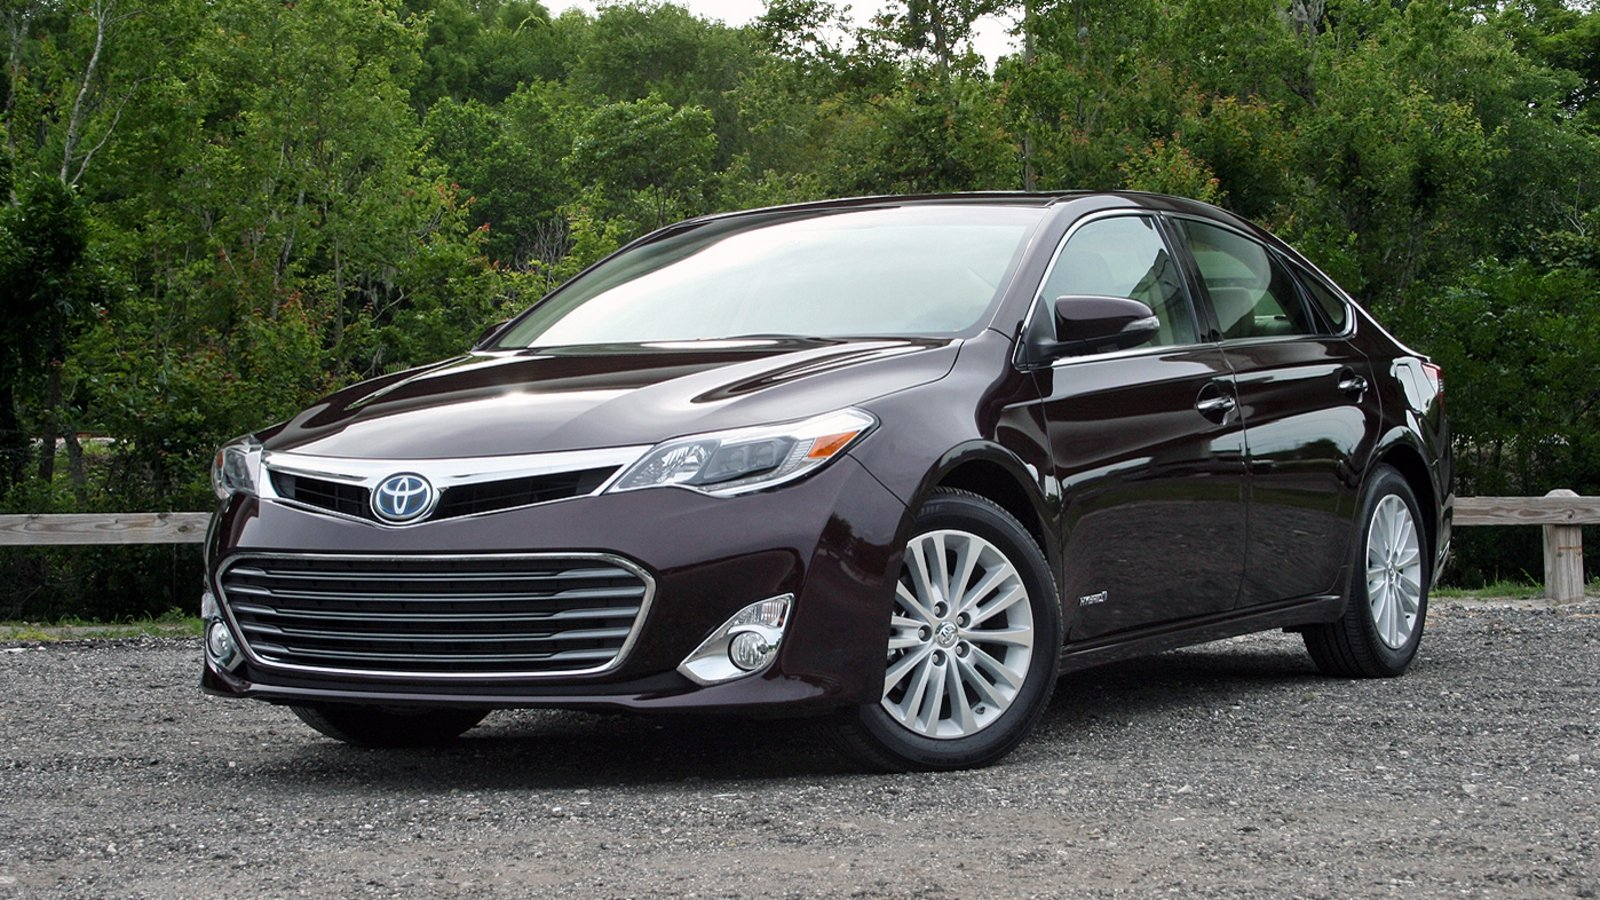 2015 toyota avalon hybrid driven review gallery top speed. Black Bedroom Furniture Sets. Home Design Ideas